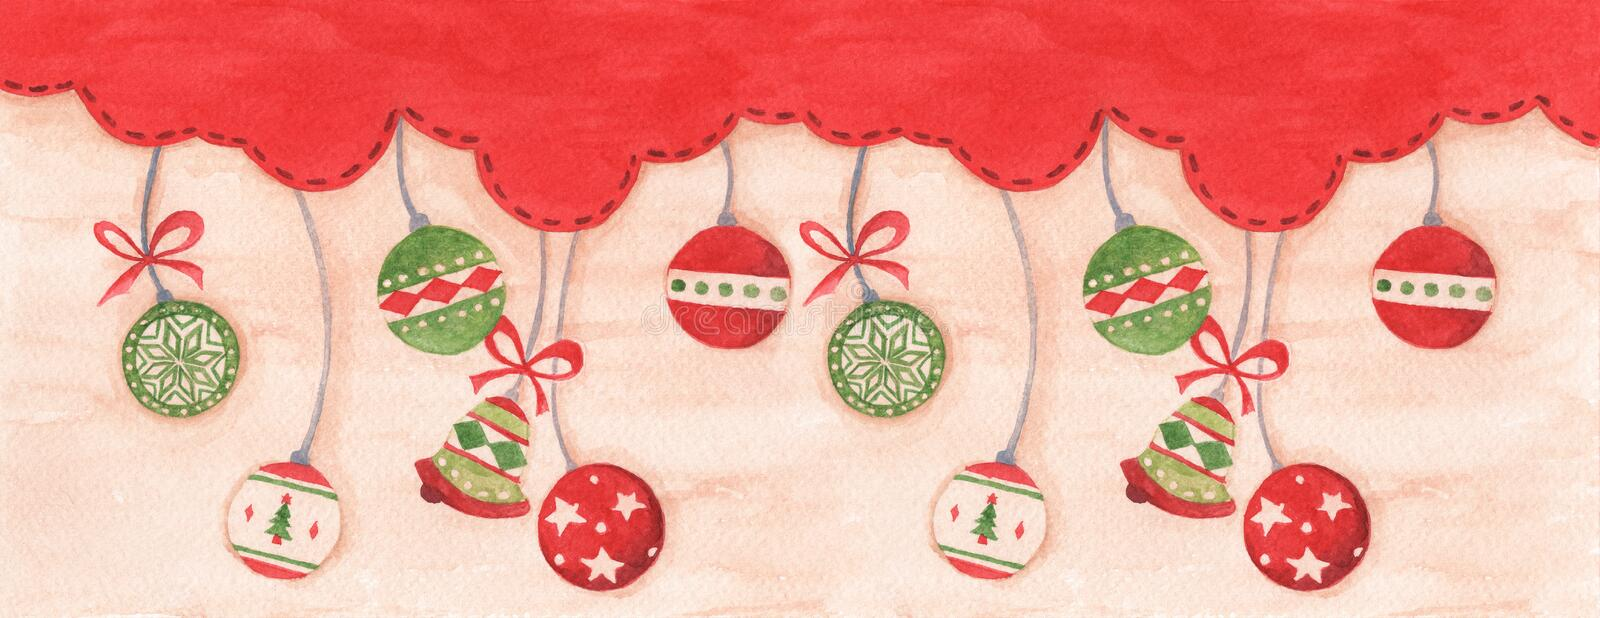 Christmas ball hanging on red sky winter season background for merry christmas and happy new year royalty free stock photos